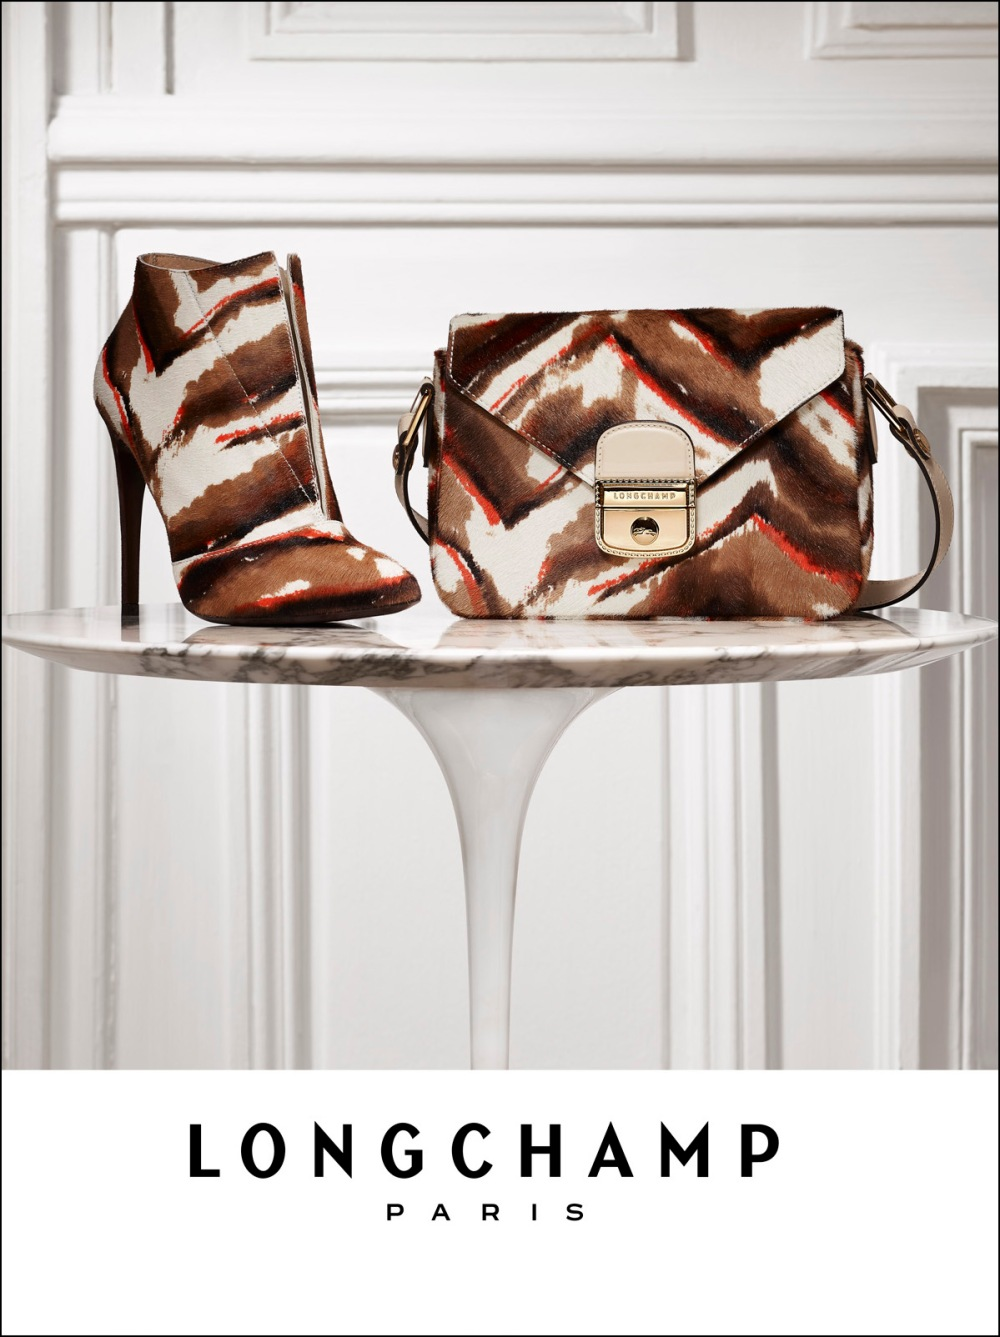 longchamps-advertising-2016-stilllife-photography-by-roberto-badin-3